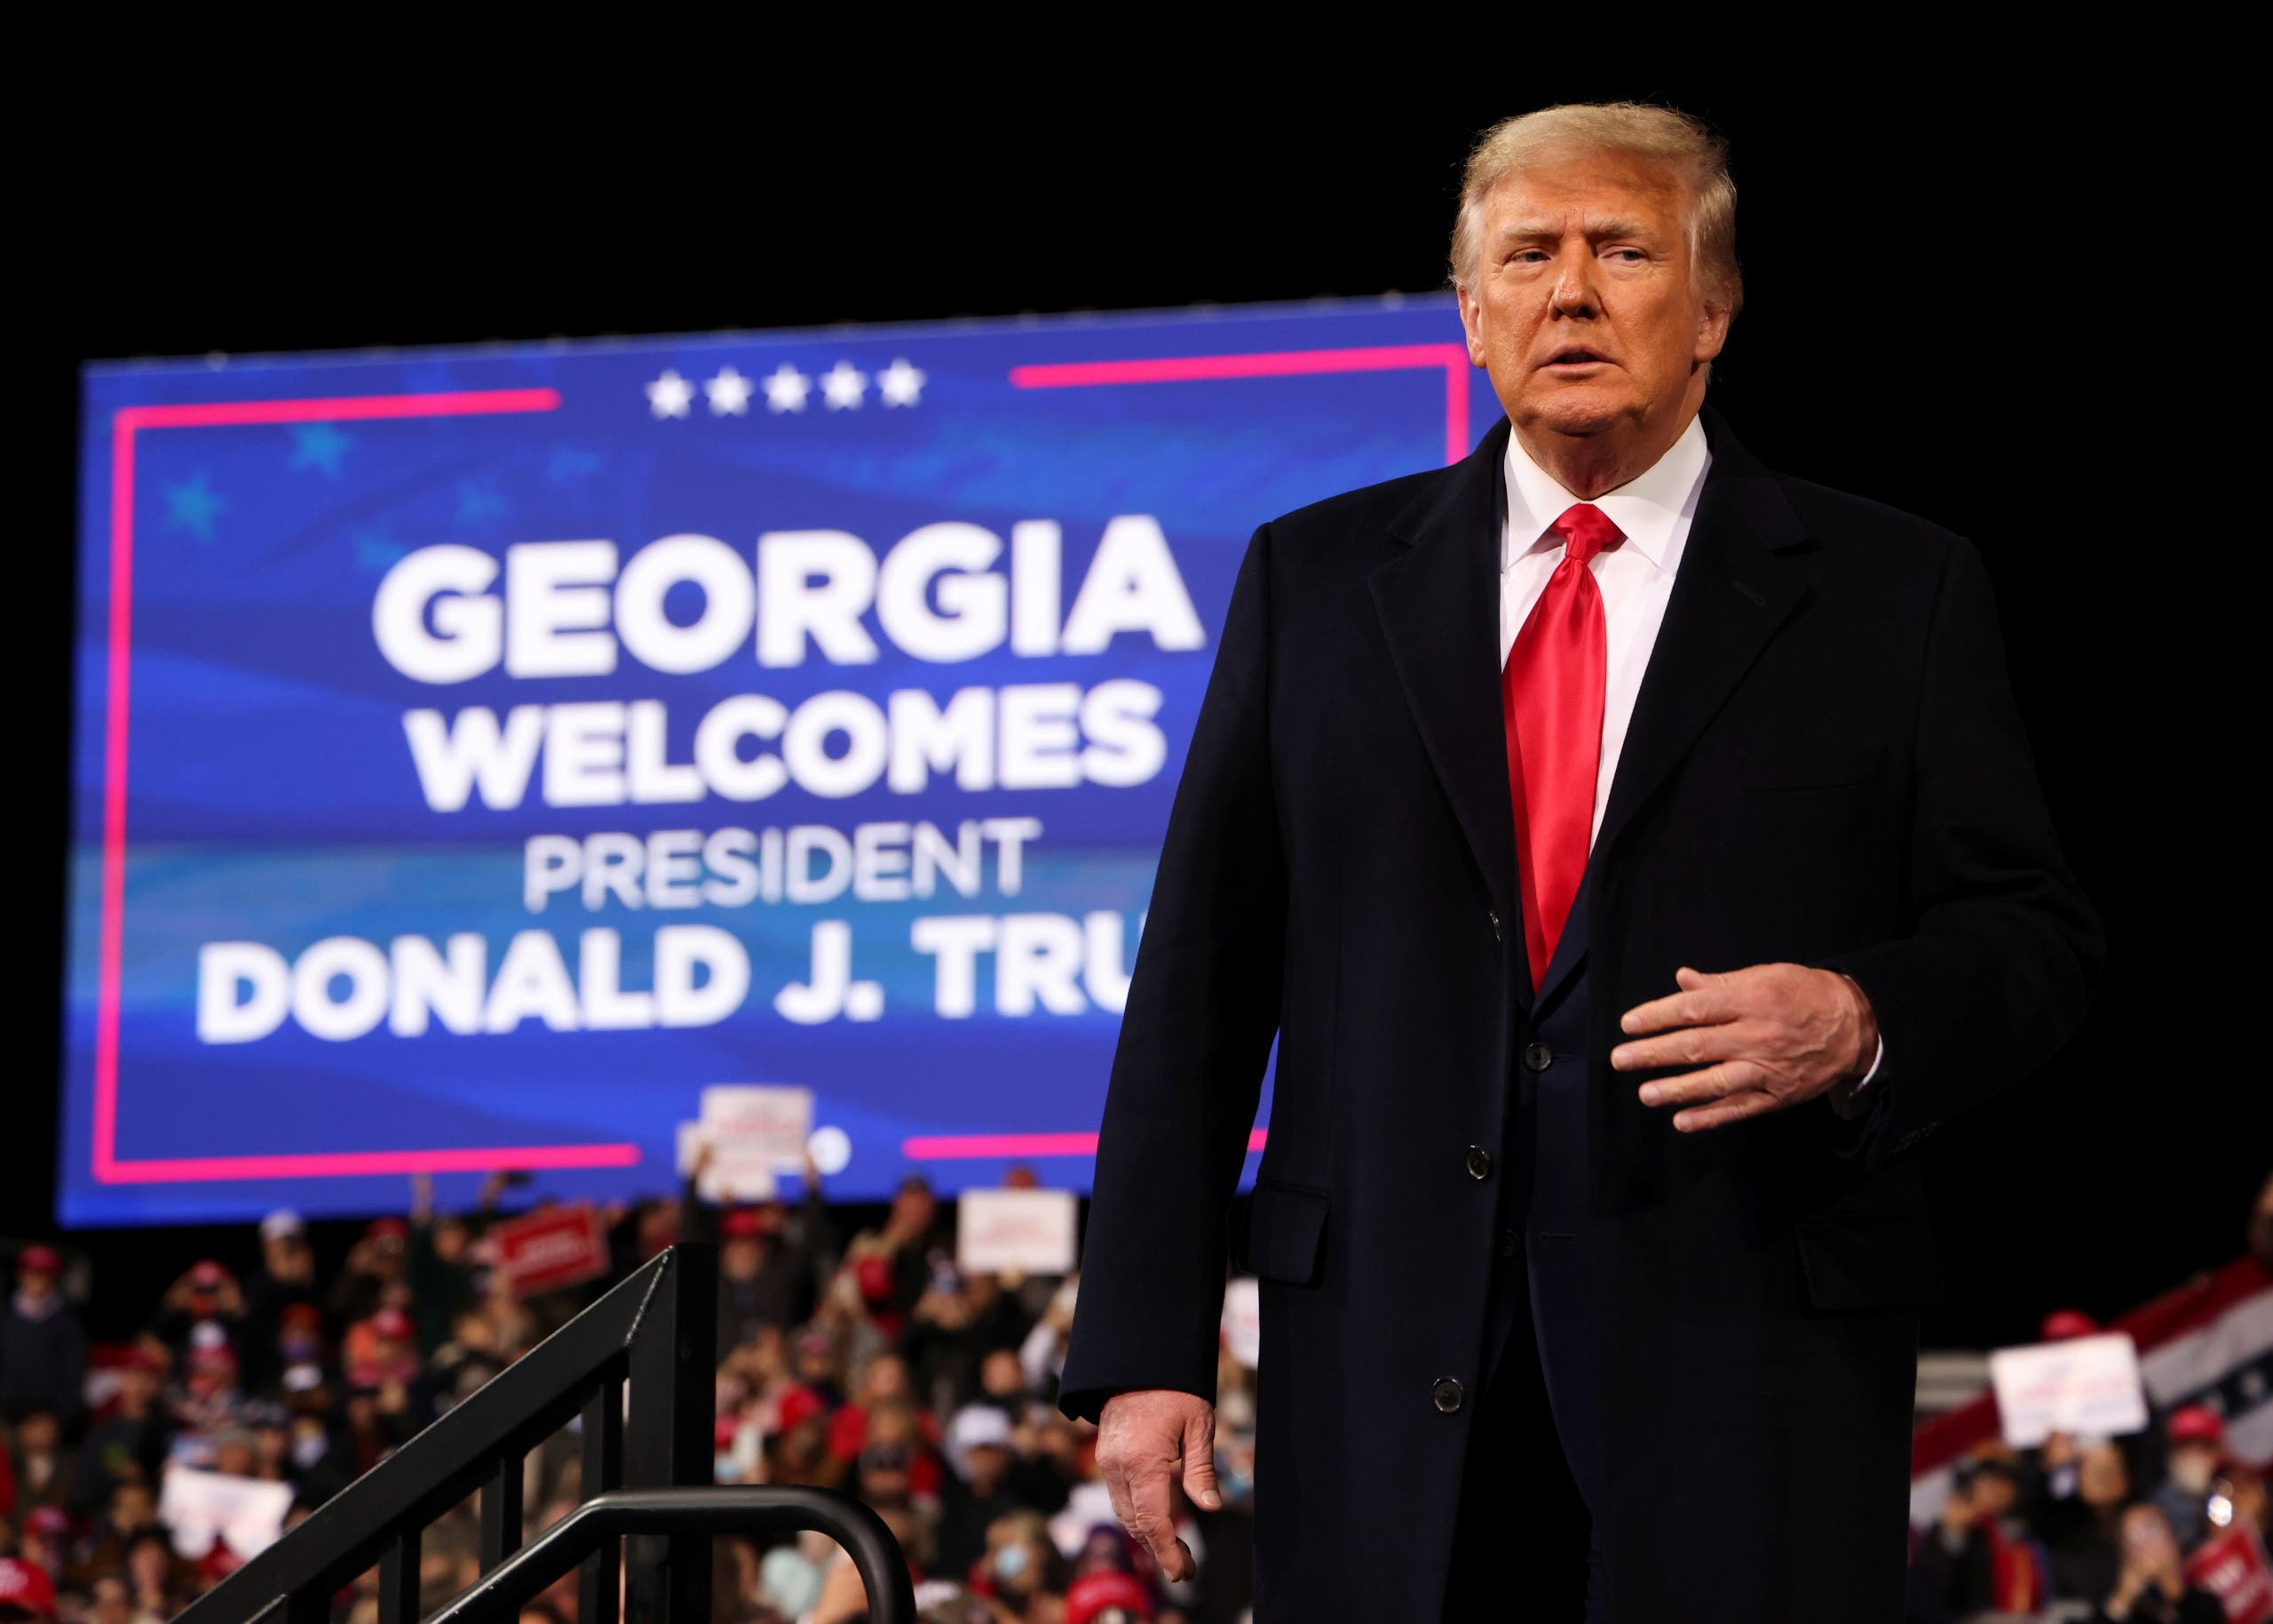 President Donald Trump attends a campaign rally for Republican US Senators David Perdue and Kelly Loeffler, ahead of their January runoff elections to determine control of the US Senate, in Valdosta, Georgia on December 5, 2020.(Reuters)